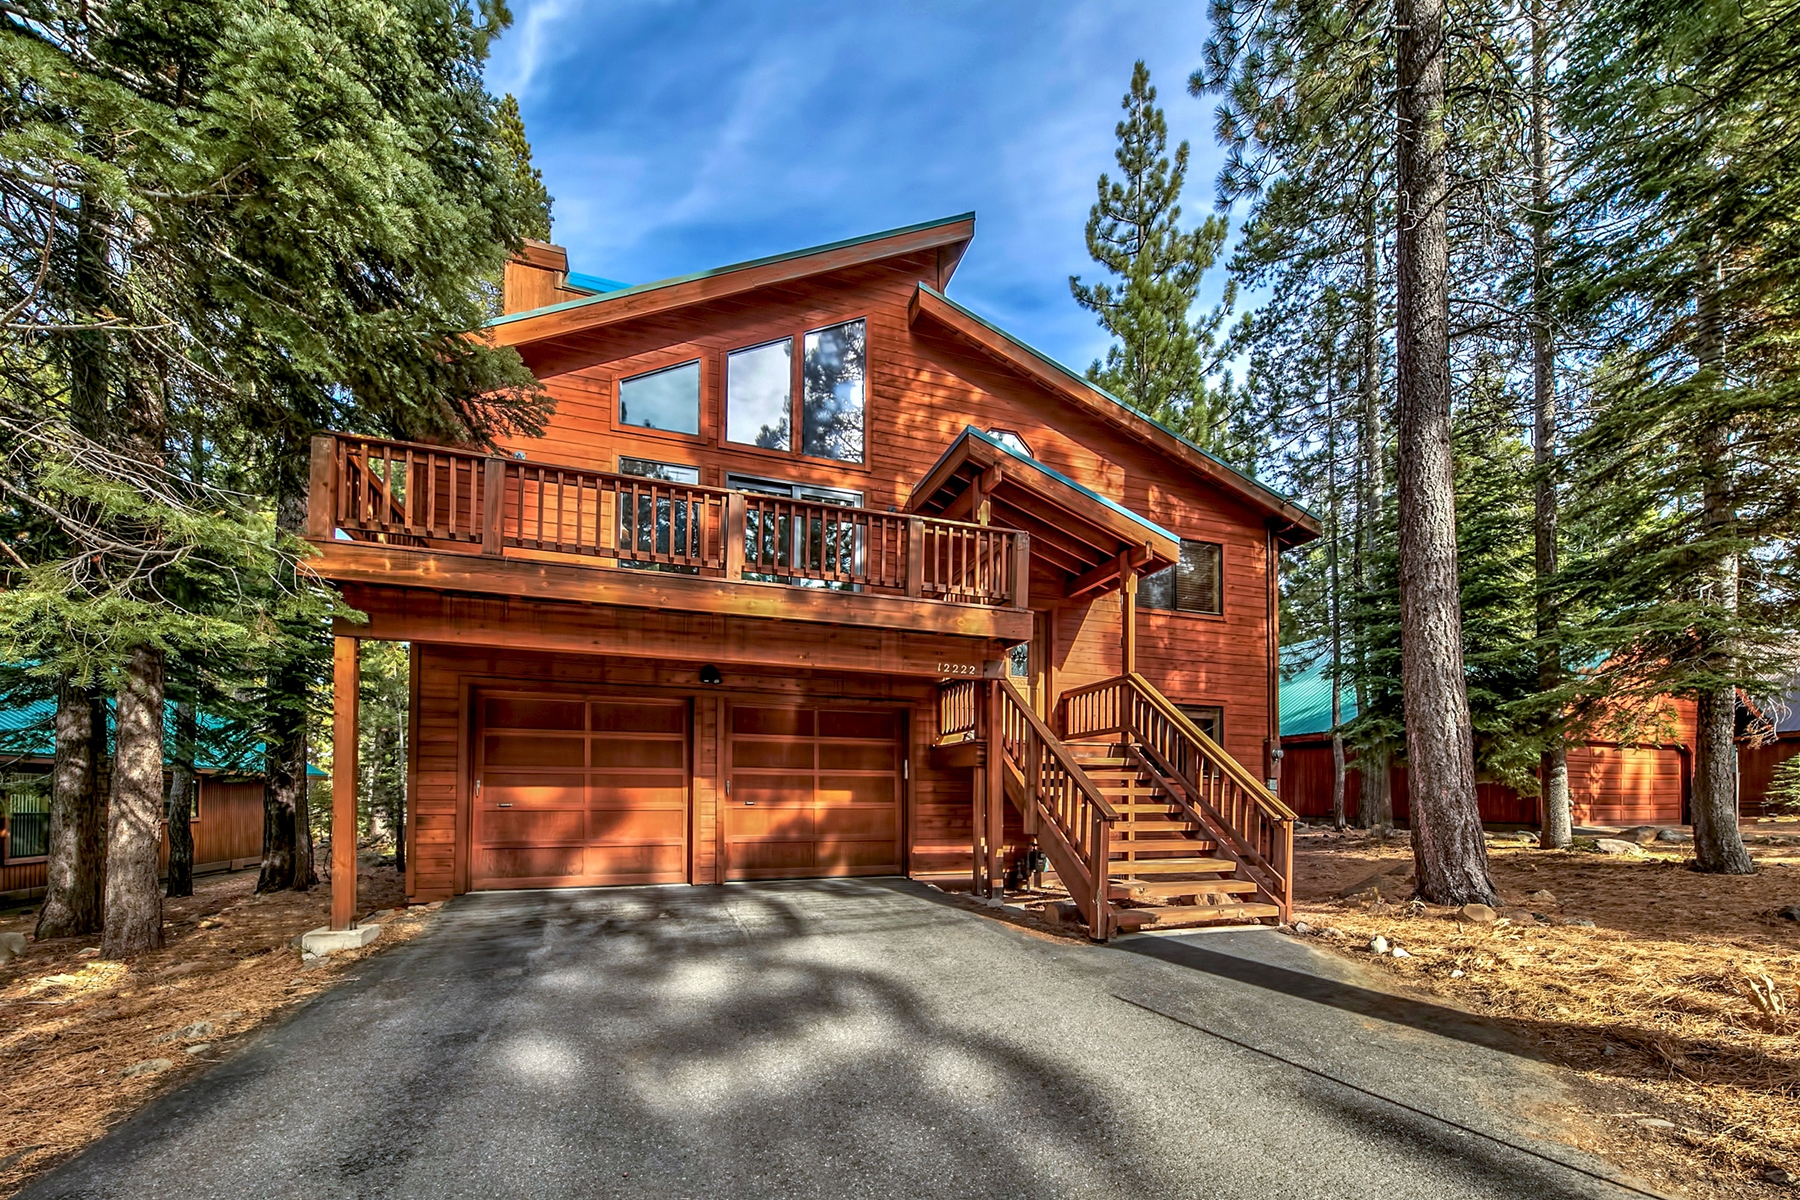 Single Family Home for Active at 12222 Muhlebach Way, Truckee, Ca 96161 12222 Muhlebach Way Truckee, California 96161 United States